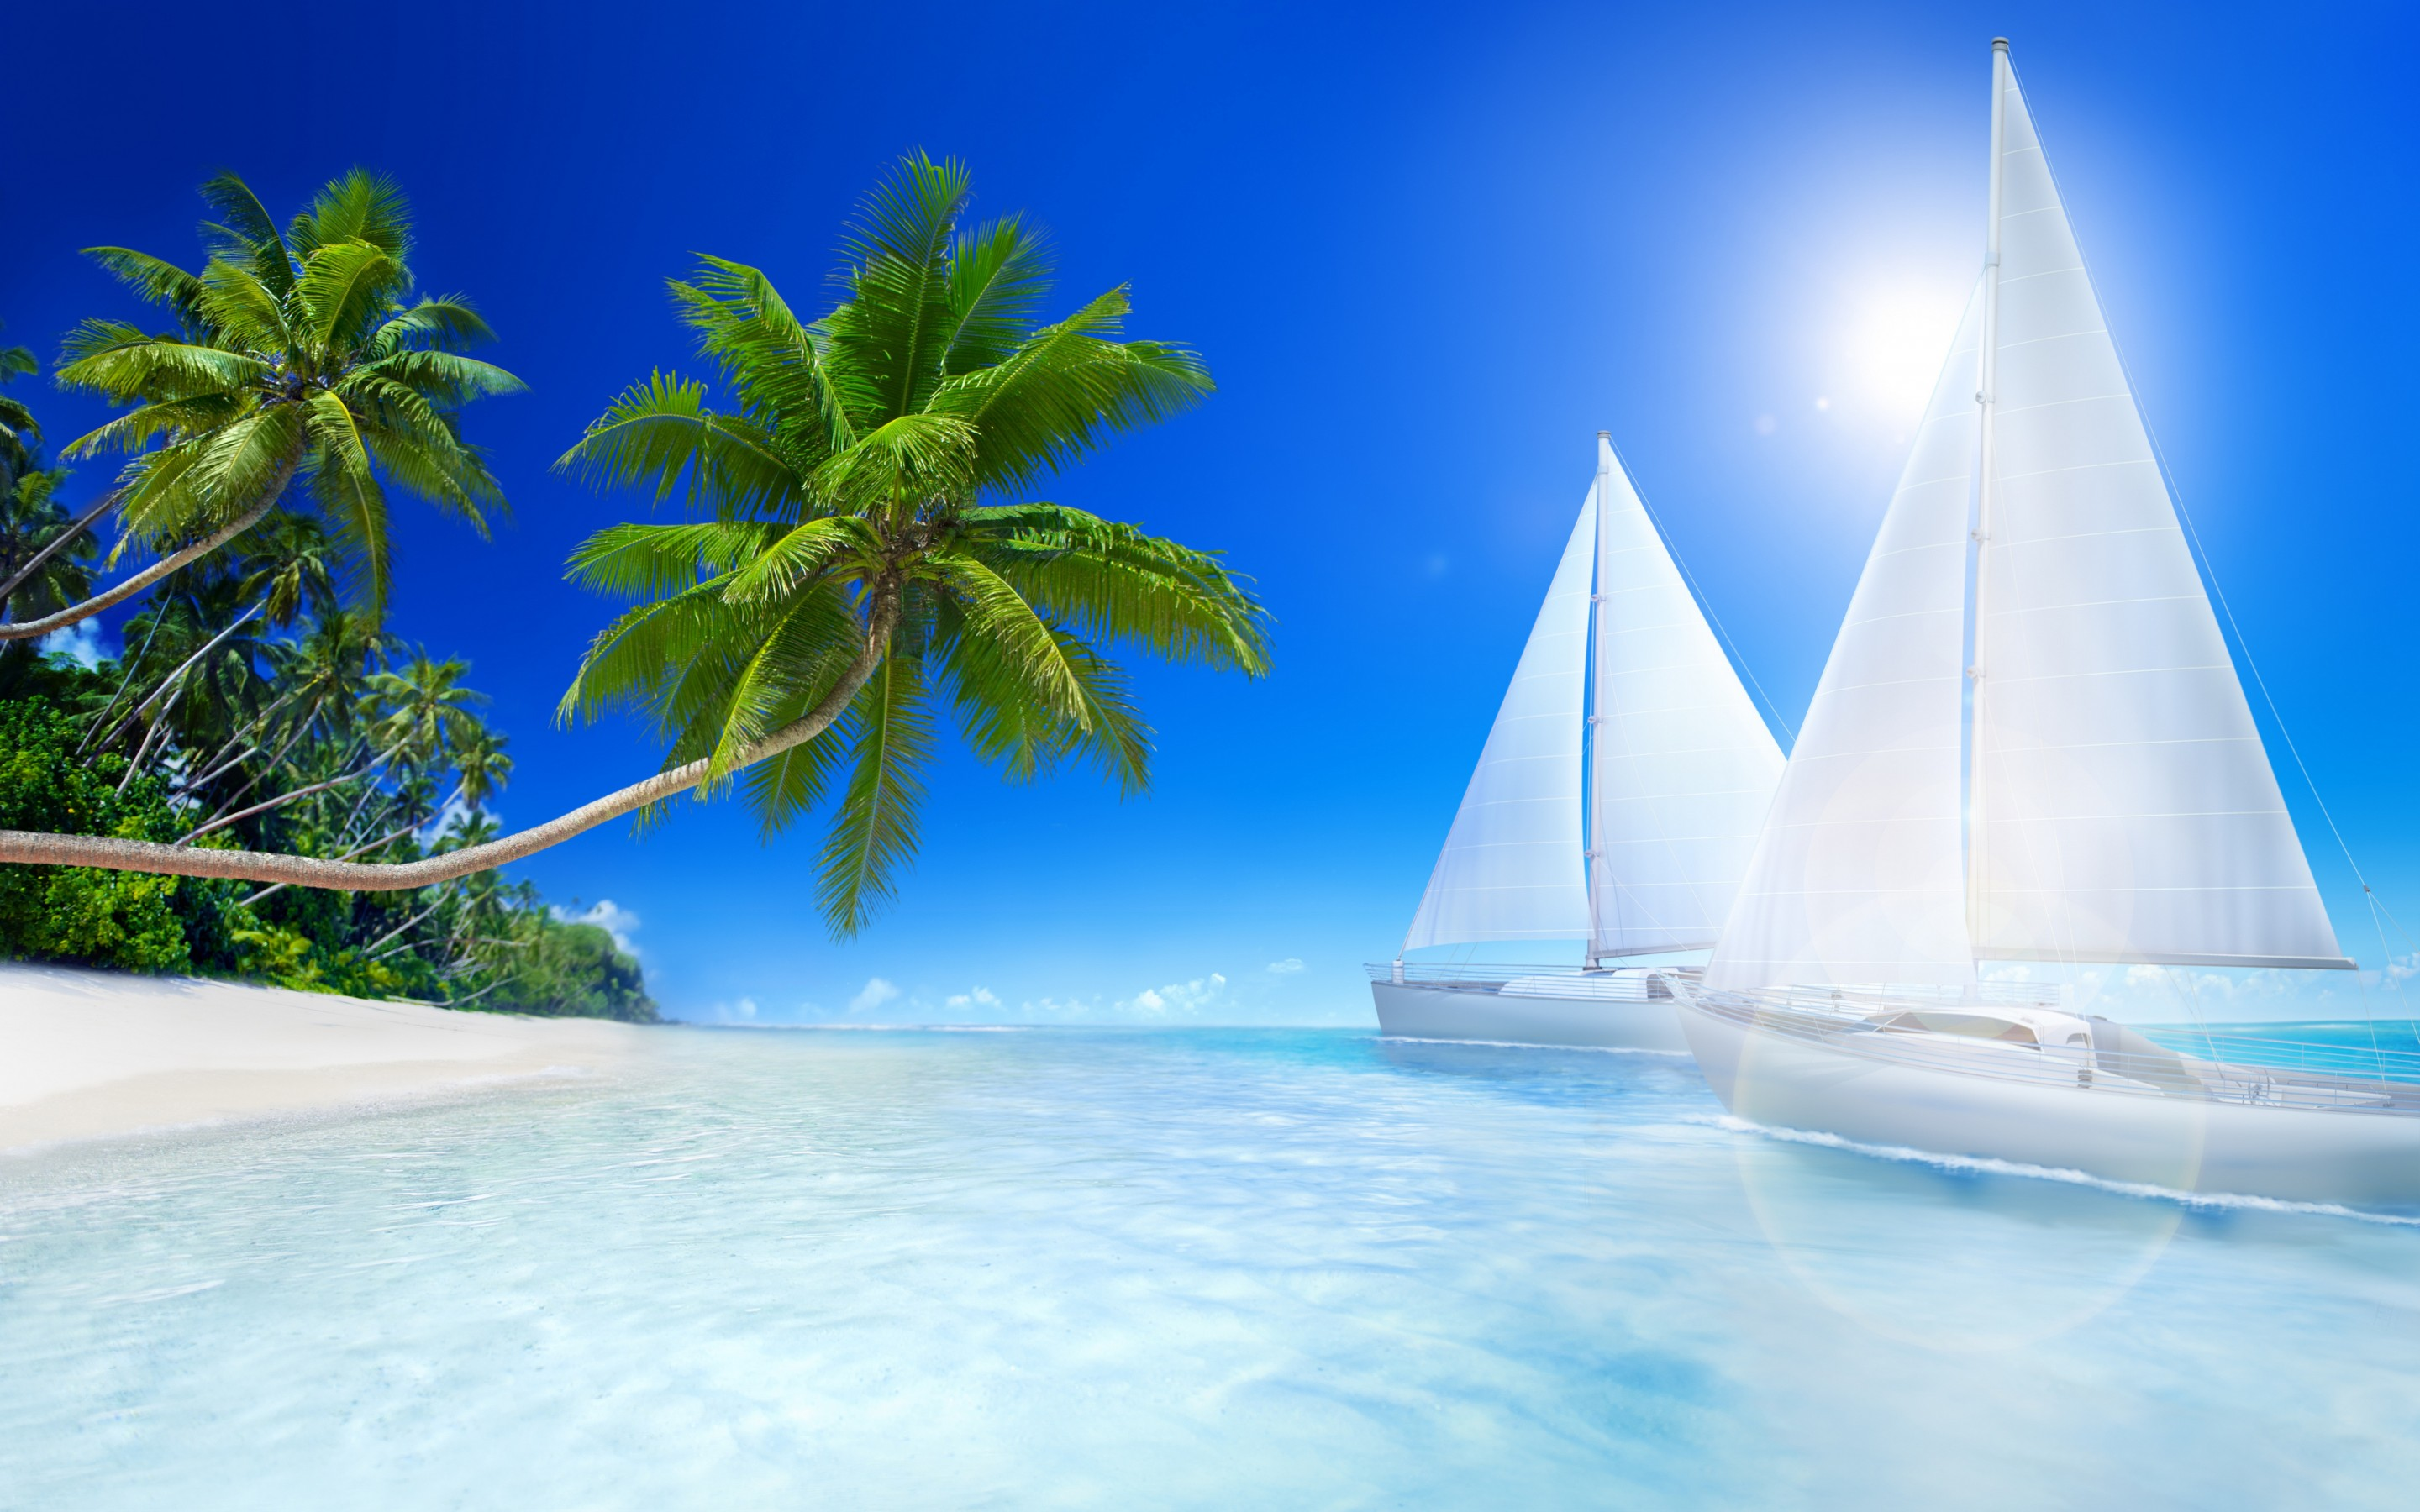 Desktop Background Hd Beach Tropical beach 2880x1800